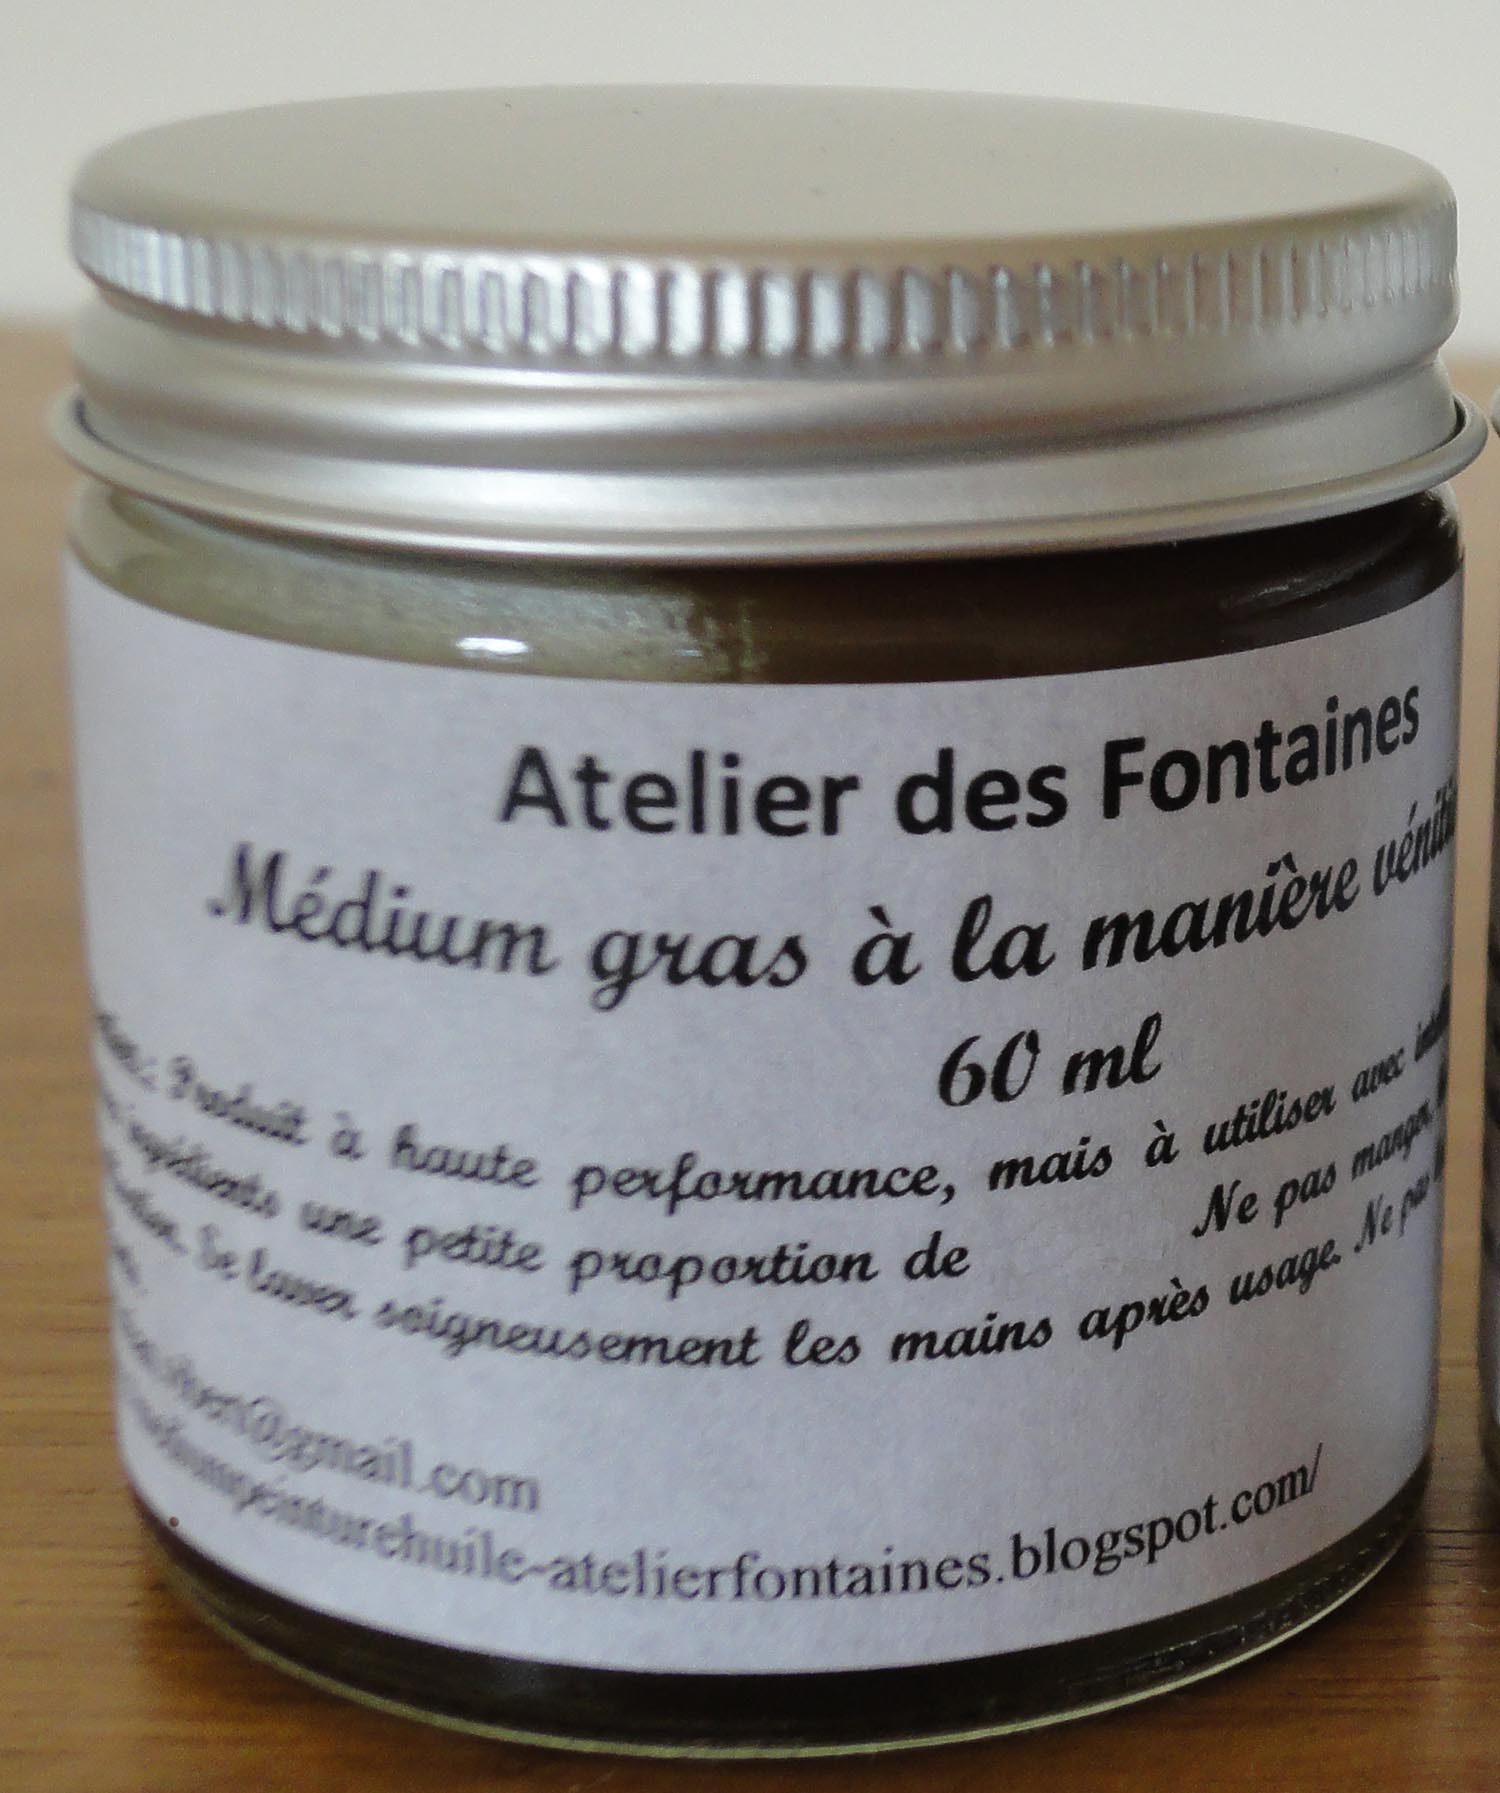 medium-venitien-atelier-fontaines-christian-vibert-3.jpg